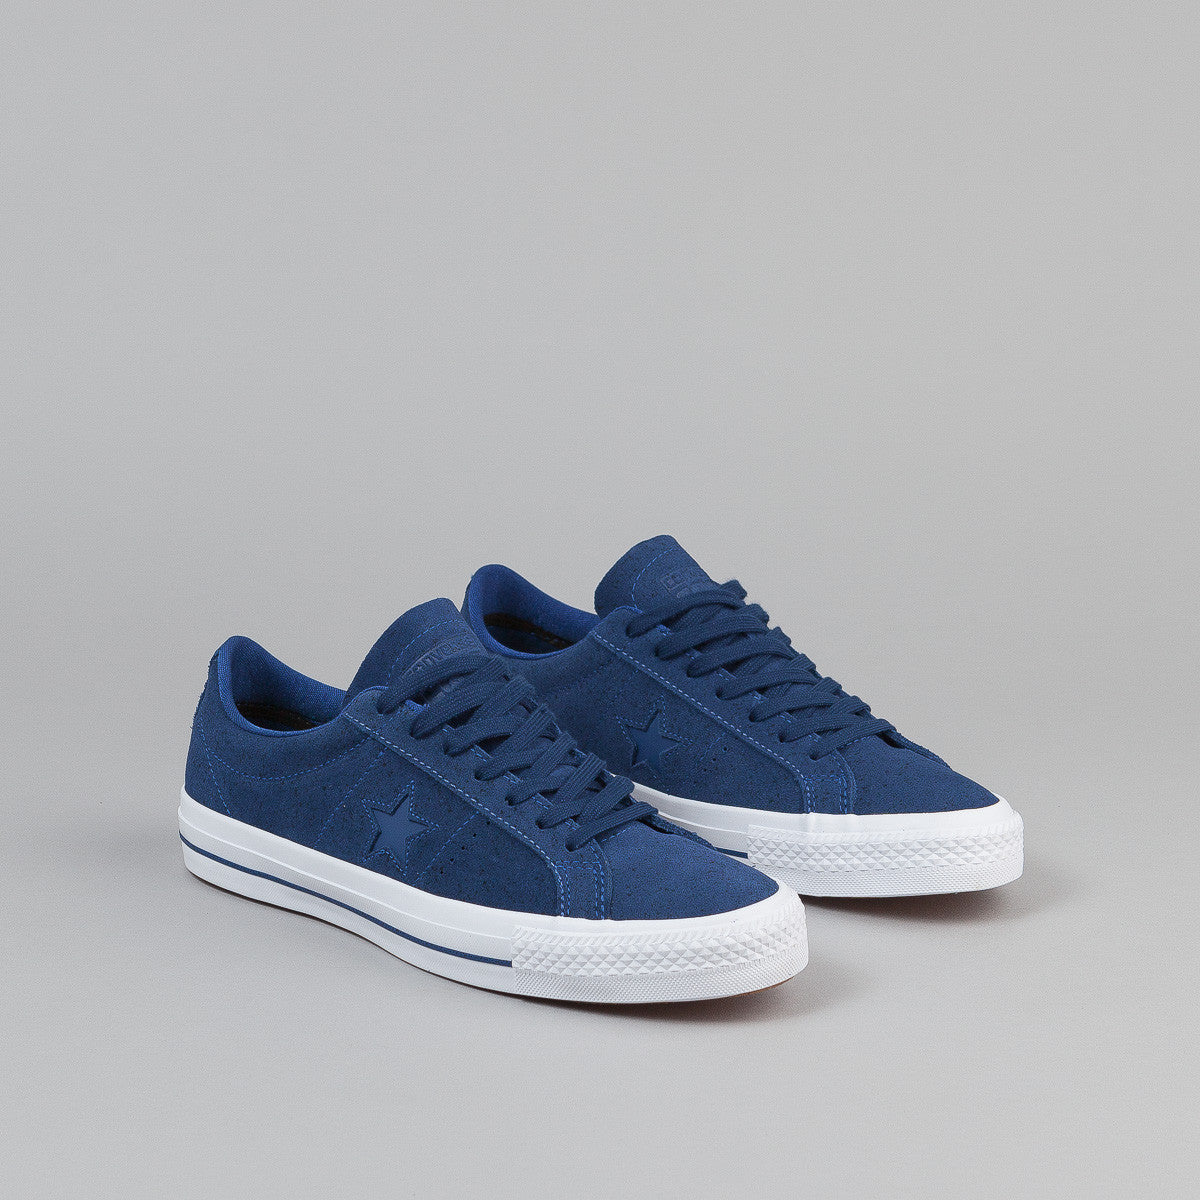 Converse One Star Pro OX Shoes - Roadtrip Blue / White